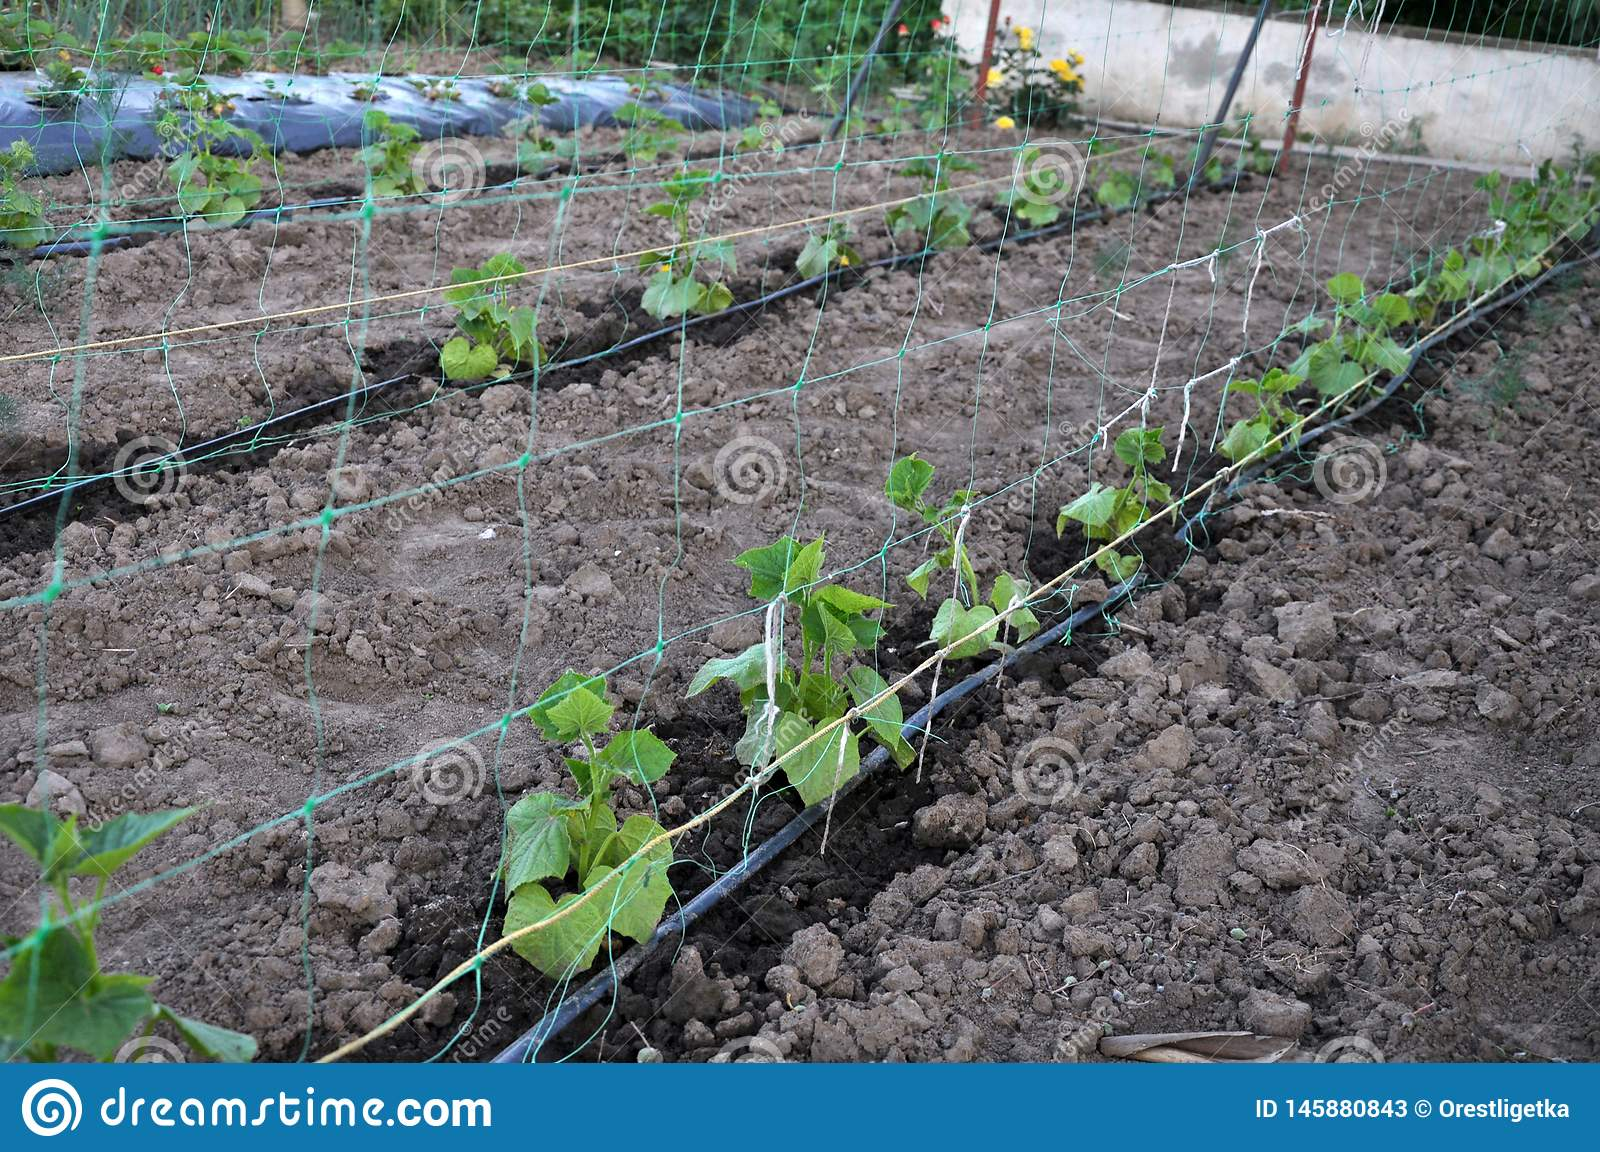 drip irrigation system when growing vegetables in the open